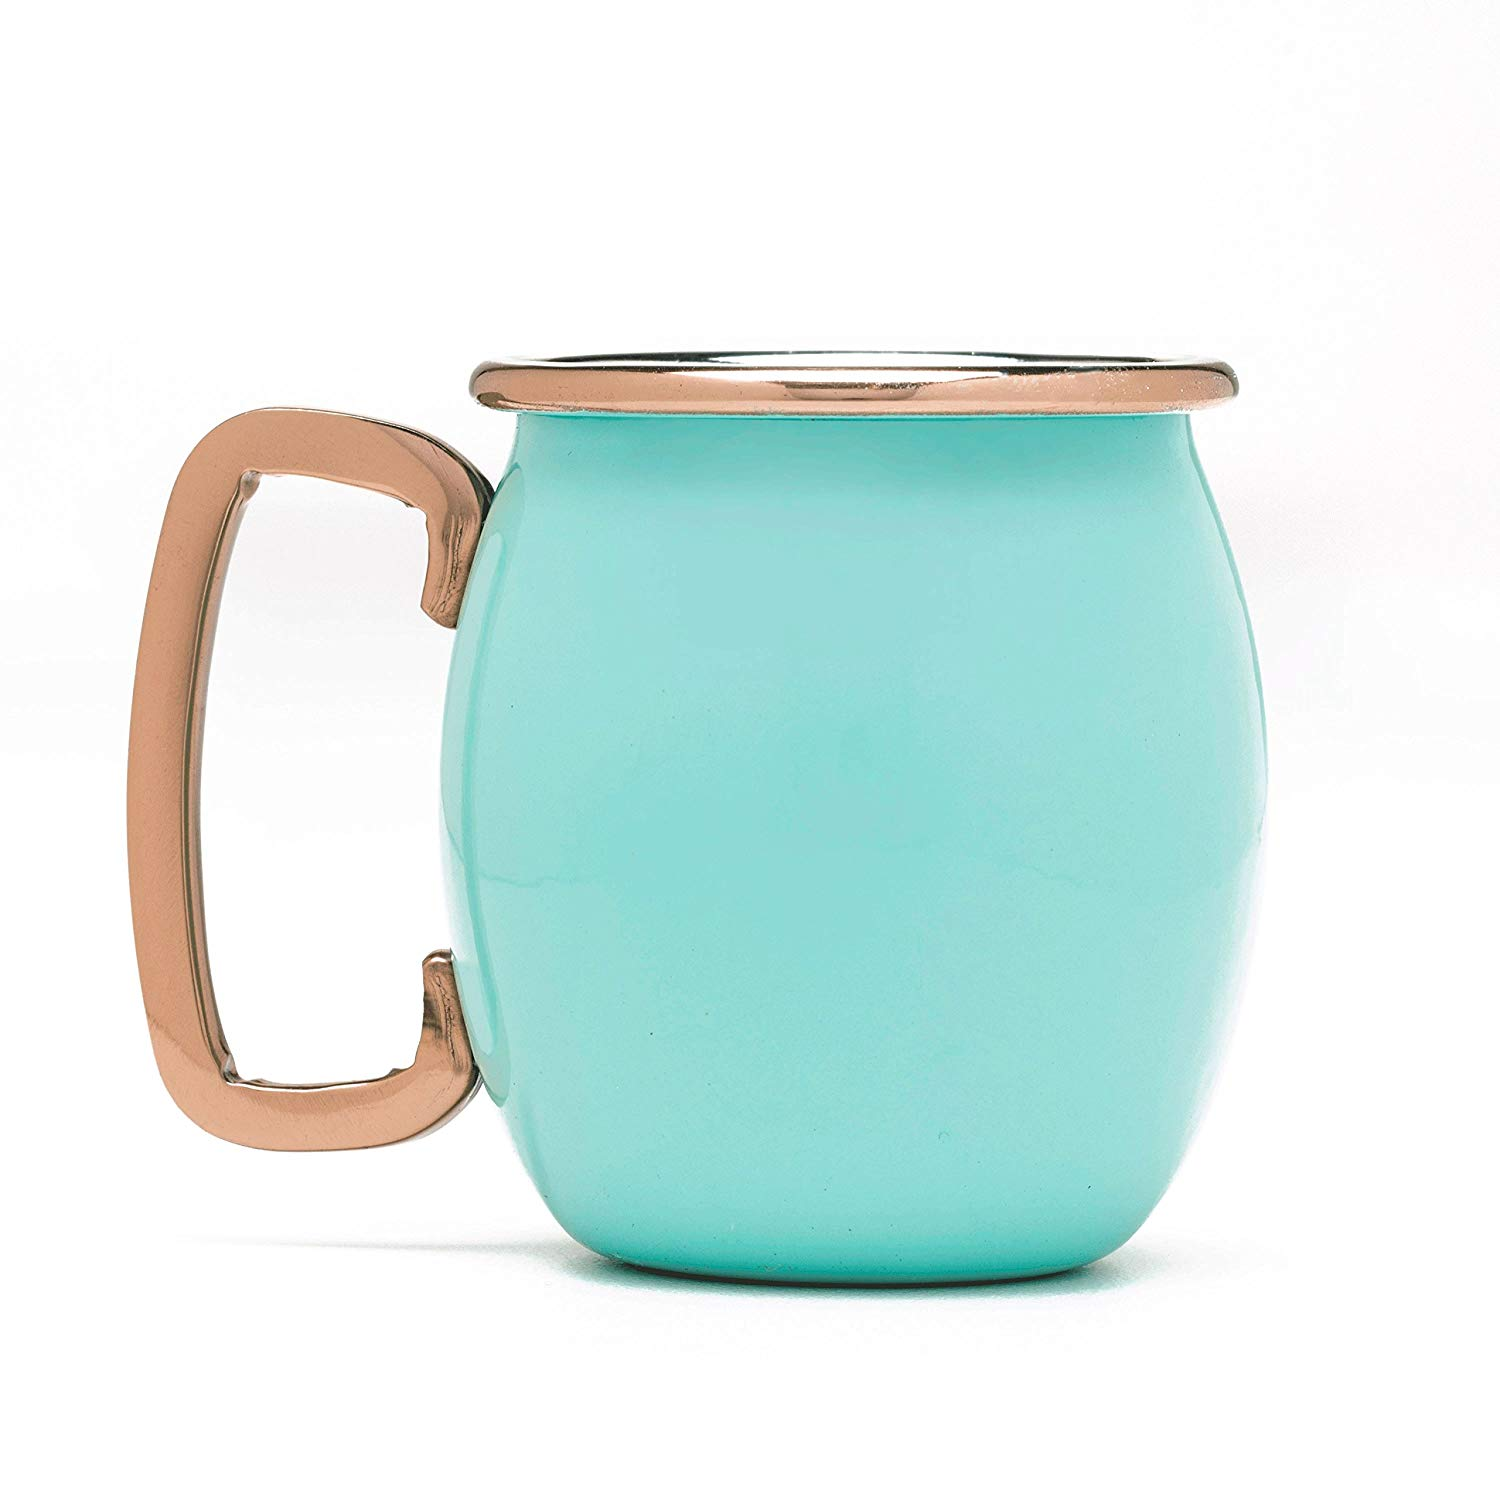 Fiesta 4 Piece Moscow Mule Shot Mug Set with Copper Accents, Turquoise